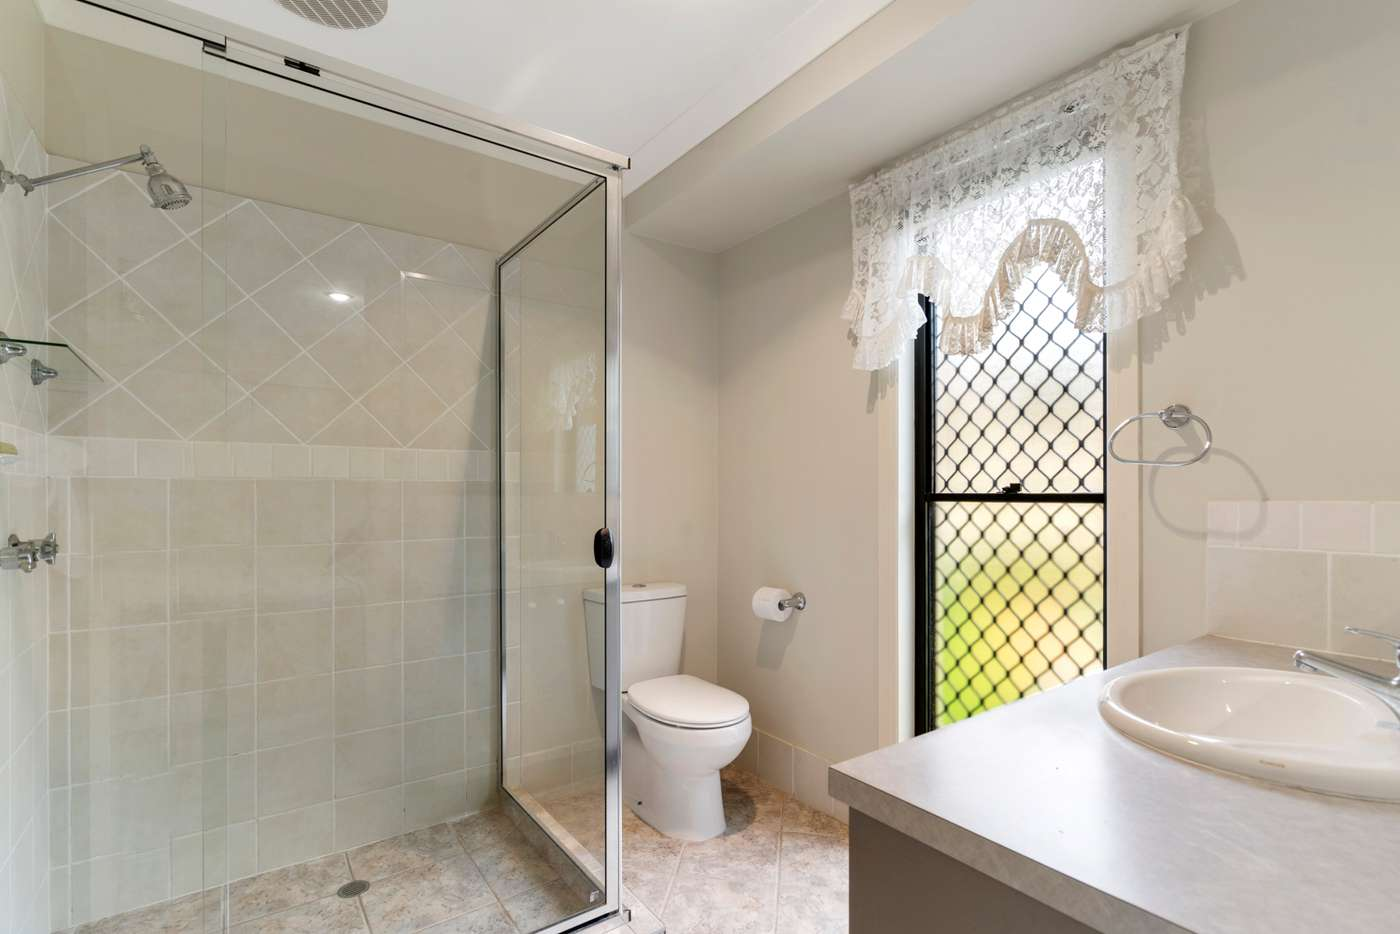 Sixth view of Homely house listing, 15 Highgrove Circuit, Peregian Springs QLD 4573